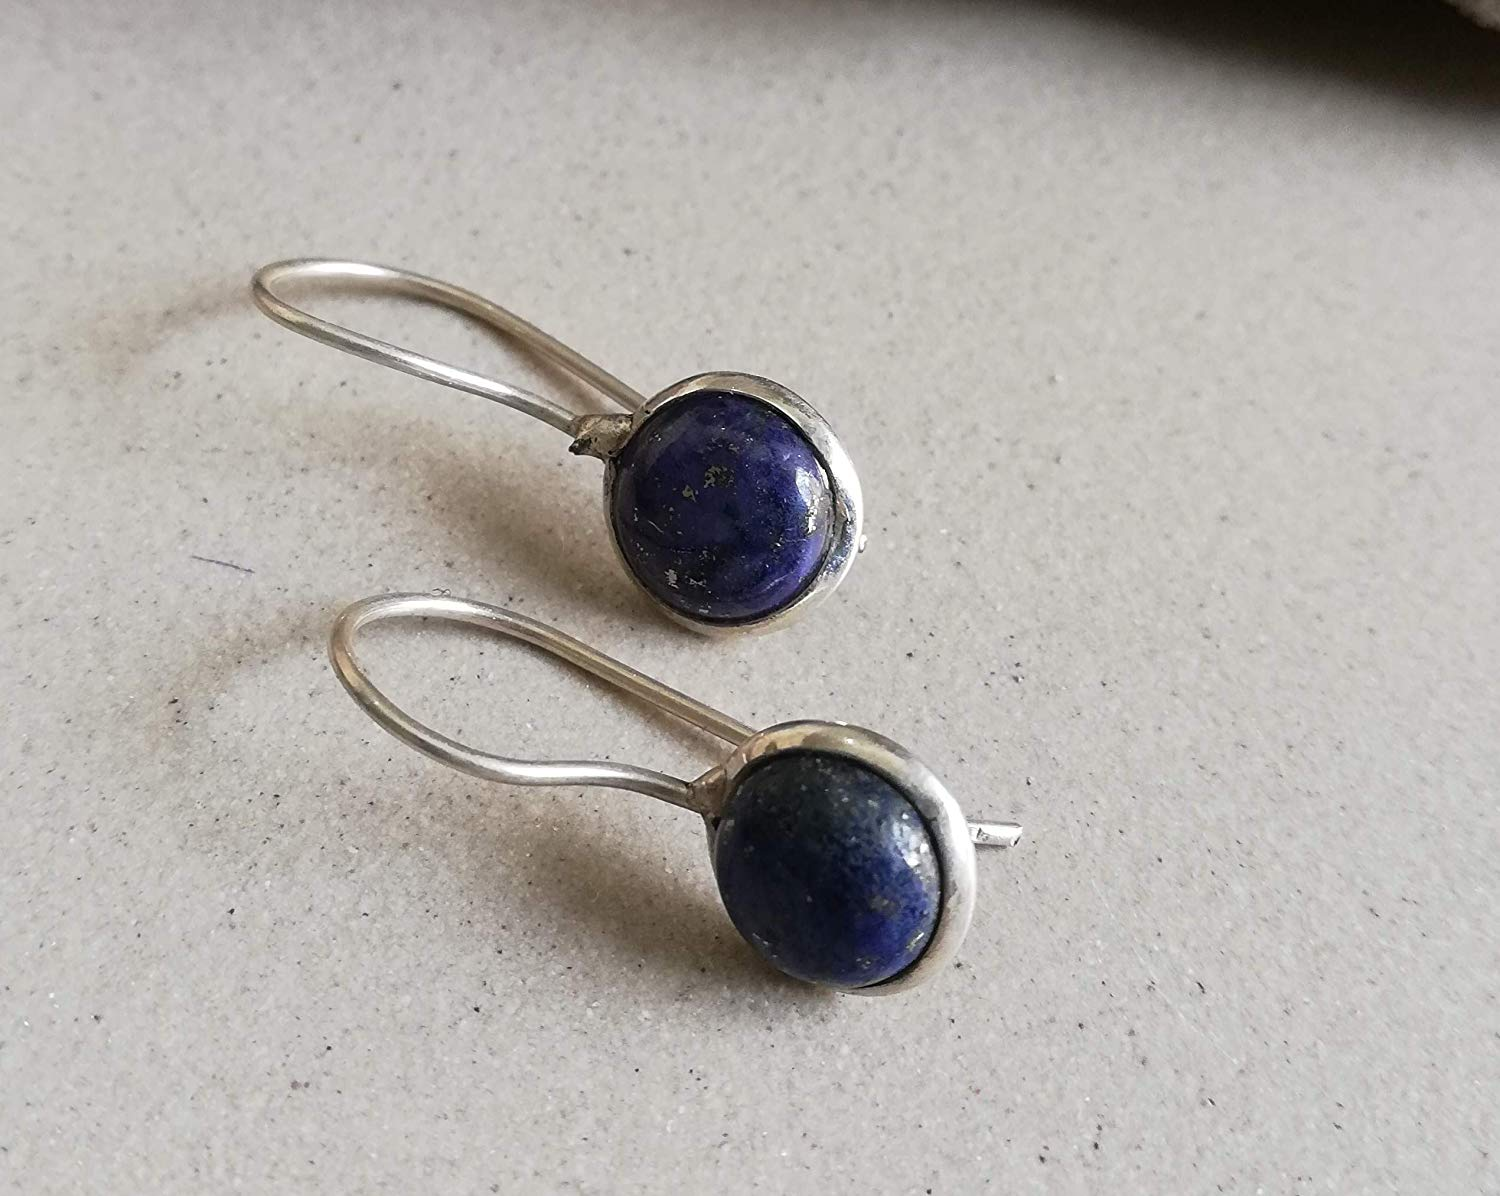 Lapis Lazuli Earring, 925 Silver Earring, Minimalist Earrings, Drop Dangle Earrings, Bridesmaid Jewelry, Blue Jewelry, Vintage Style Earring, Cocktail Earring, Elegant Earrings, Charm Earrings, Gypsy